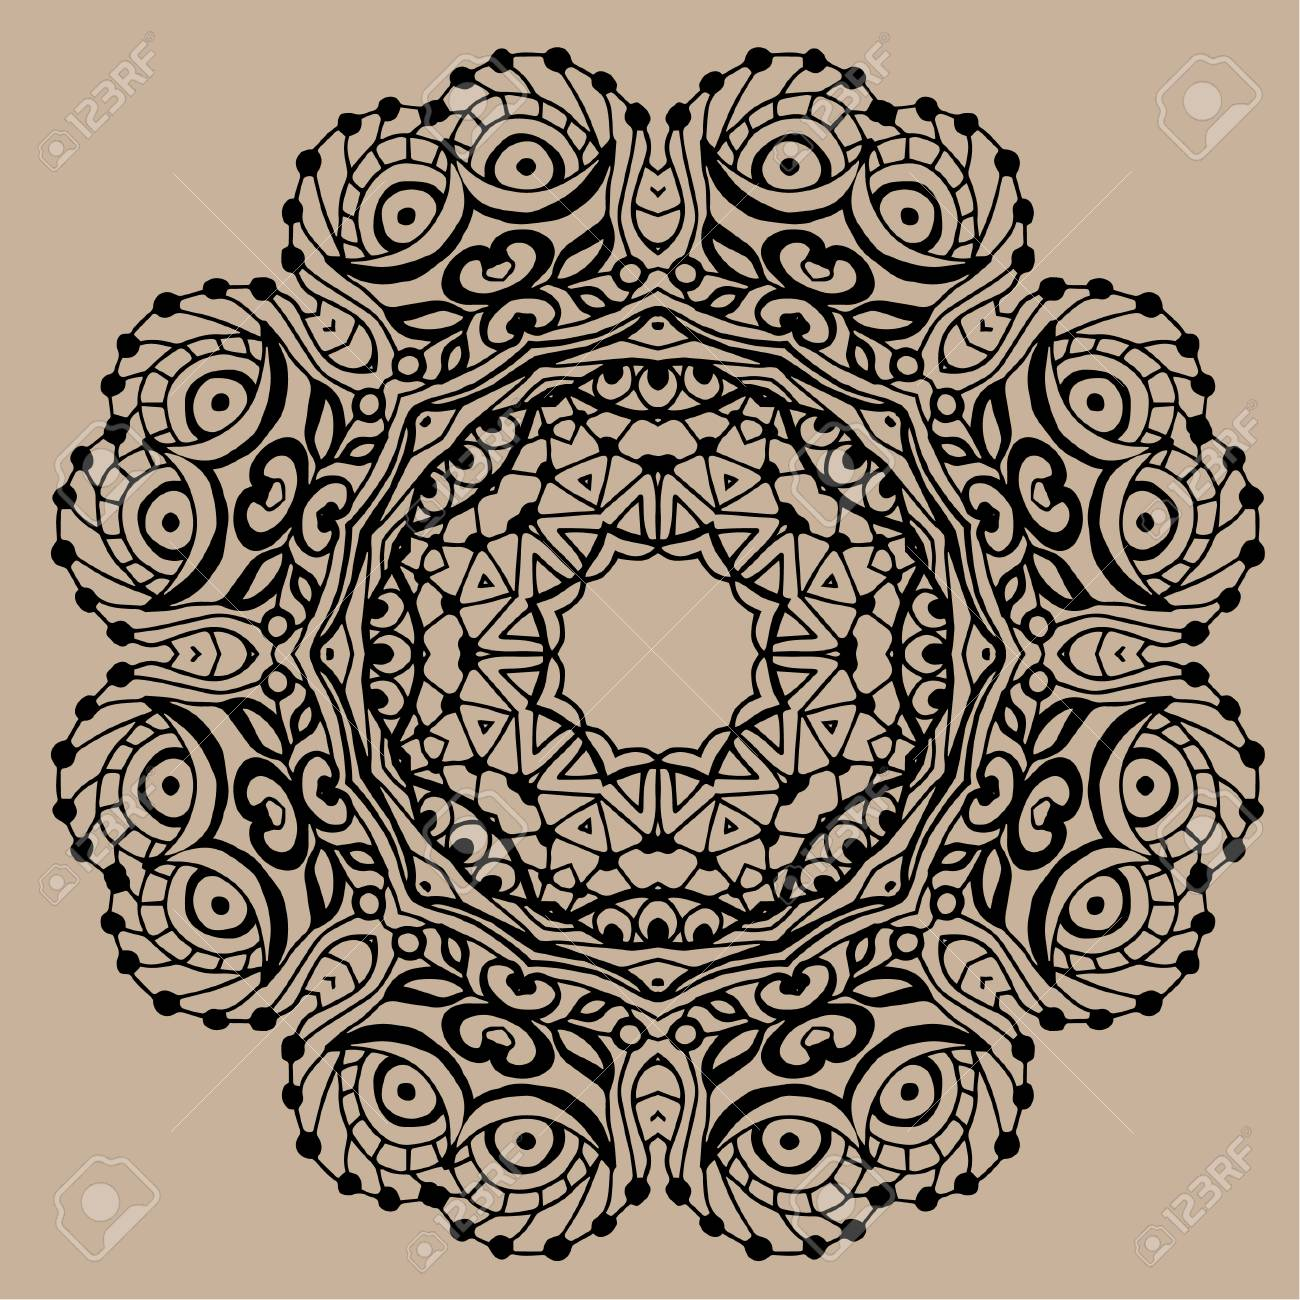 Mandala - Coloring Book Page For Adults, Relax And Meditation ...